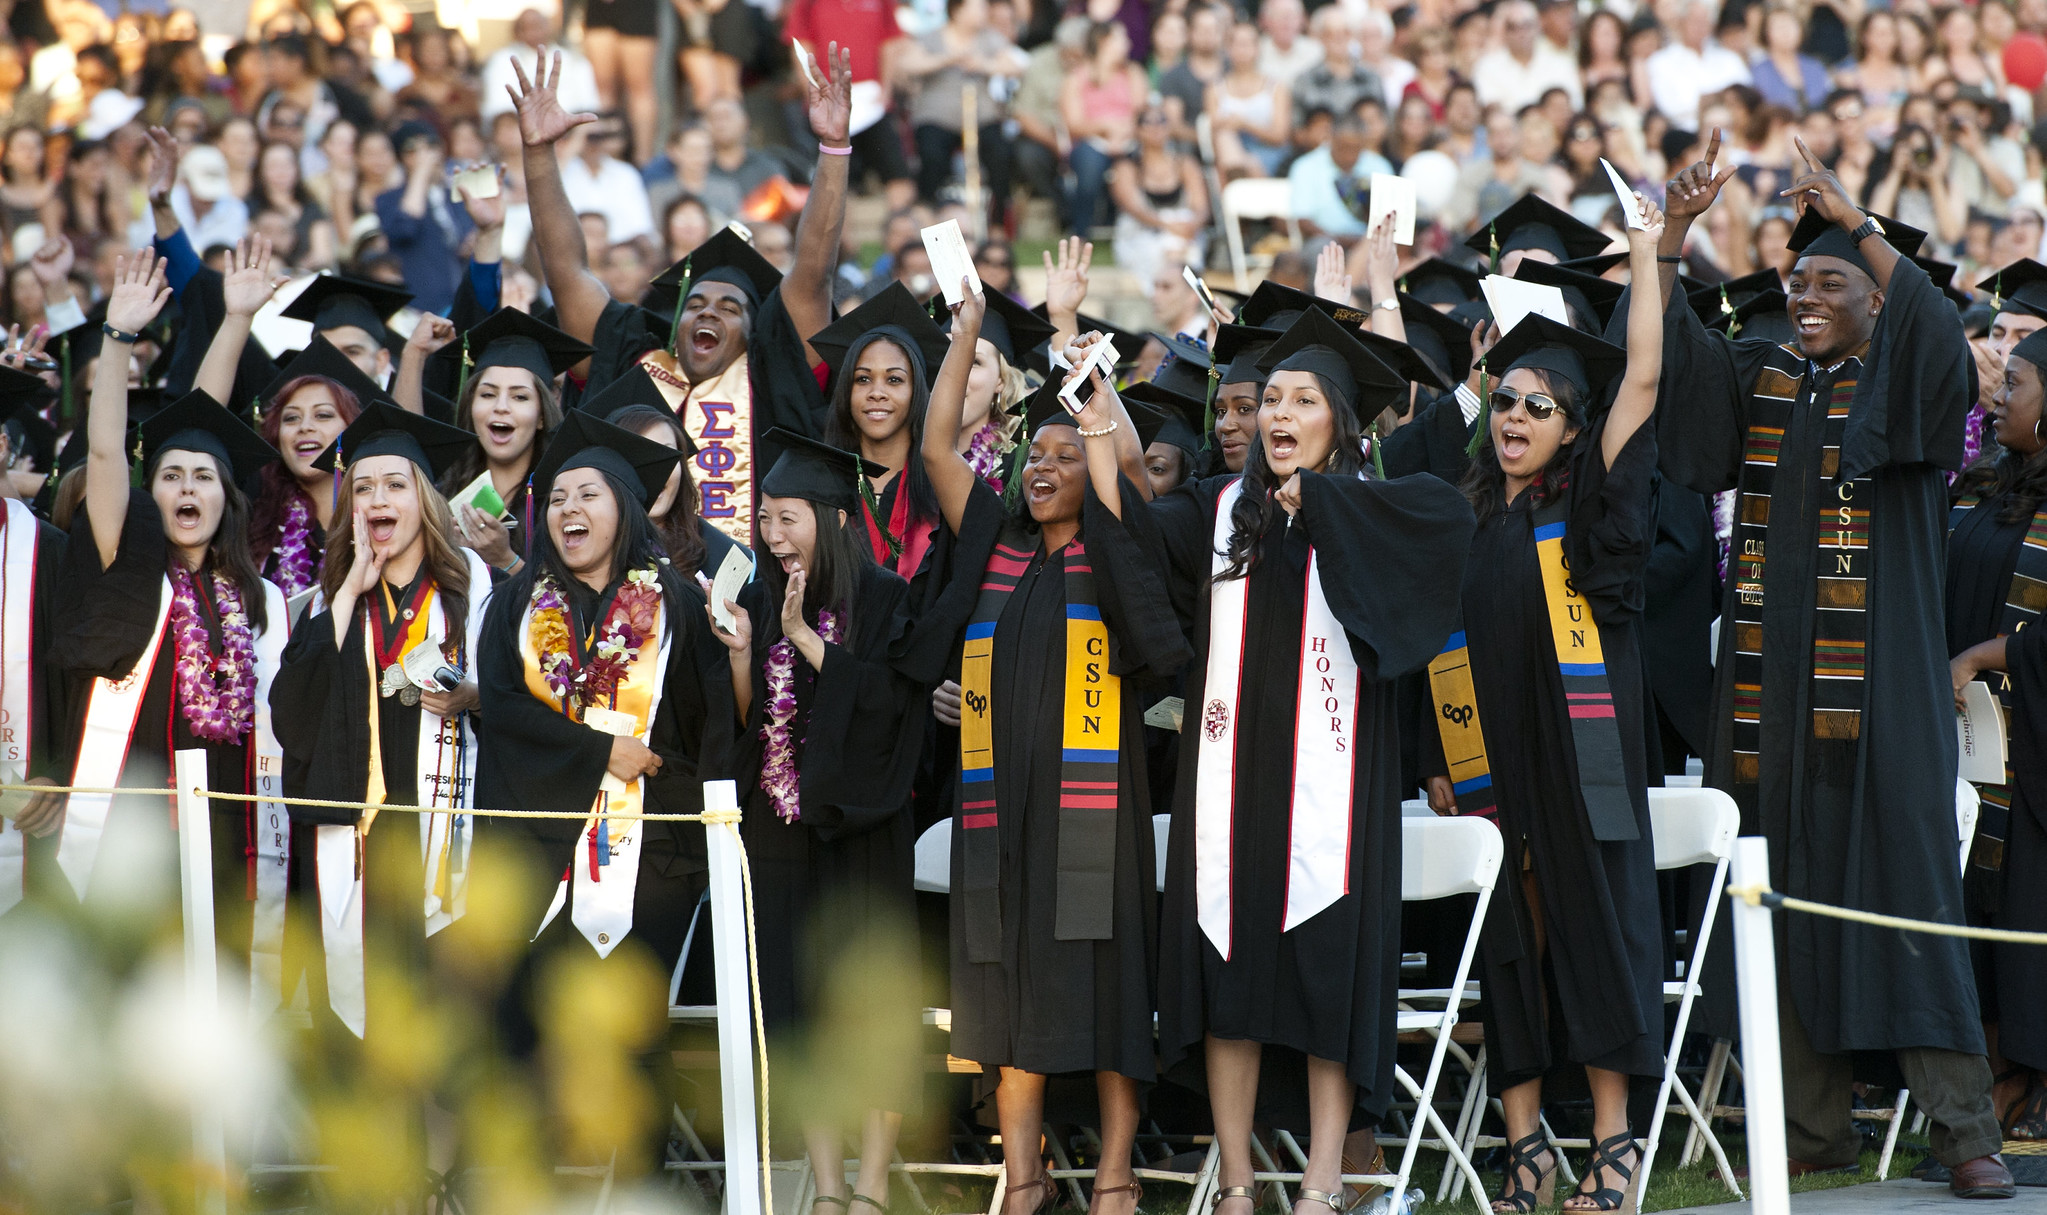 A large group of people wearing graduation caps and gowns cheering and smiling.